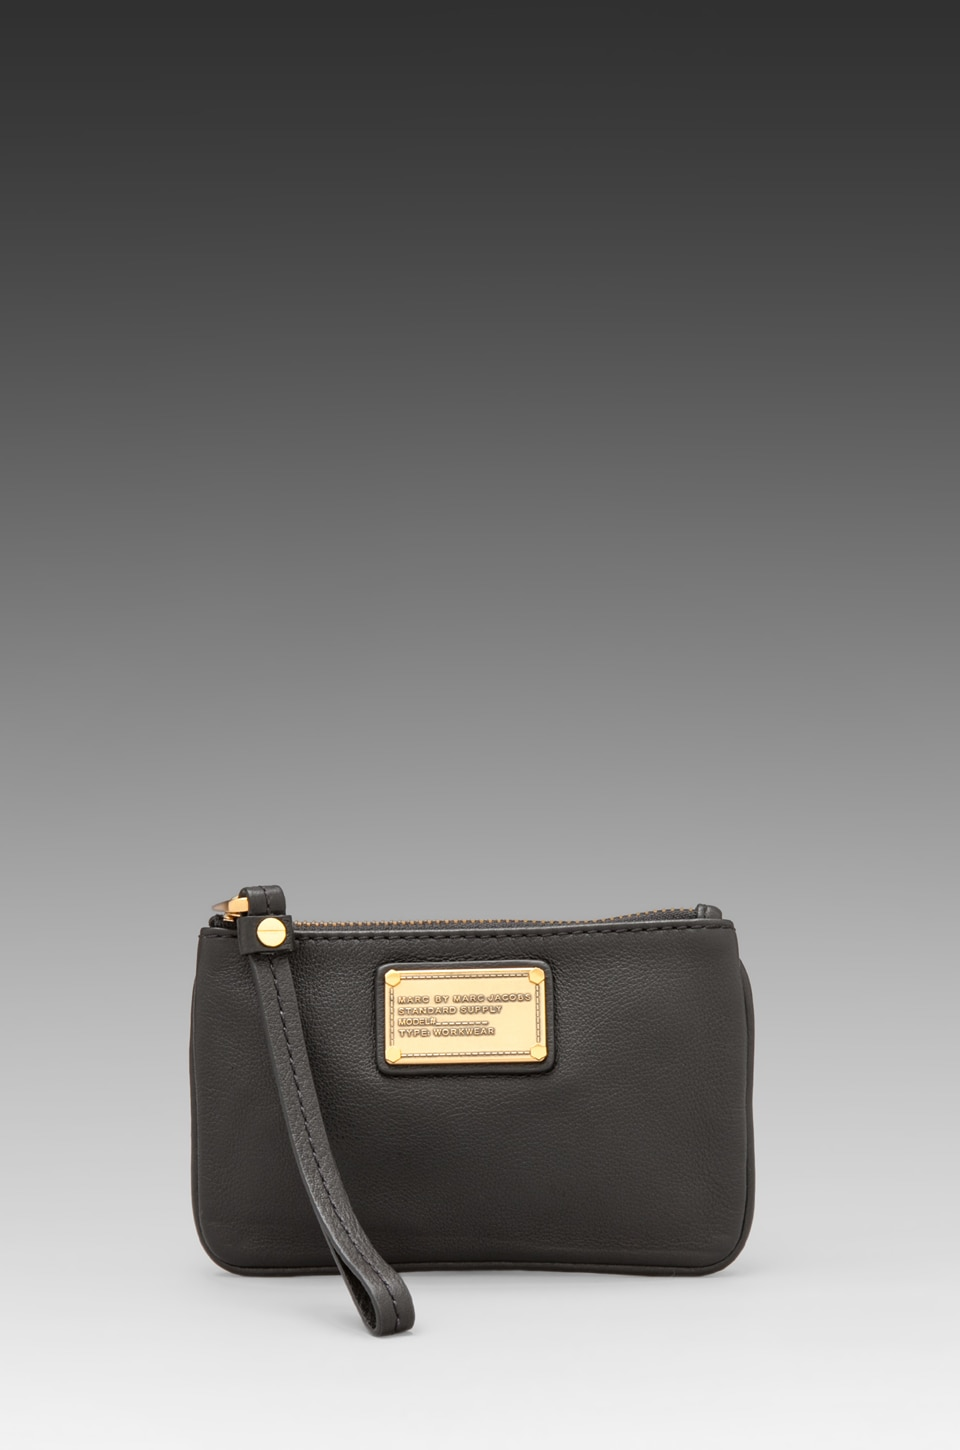 Marc by Marc Jacobs Classic Q Small Wristlet in Black